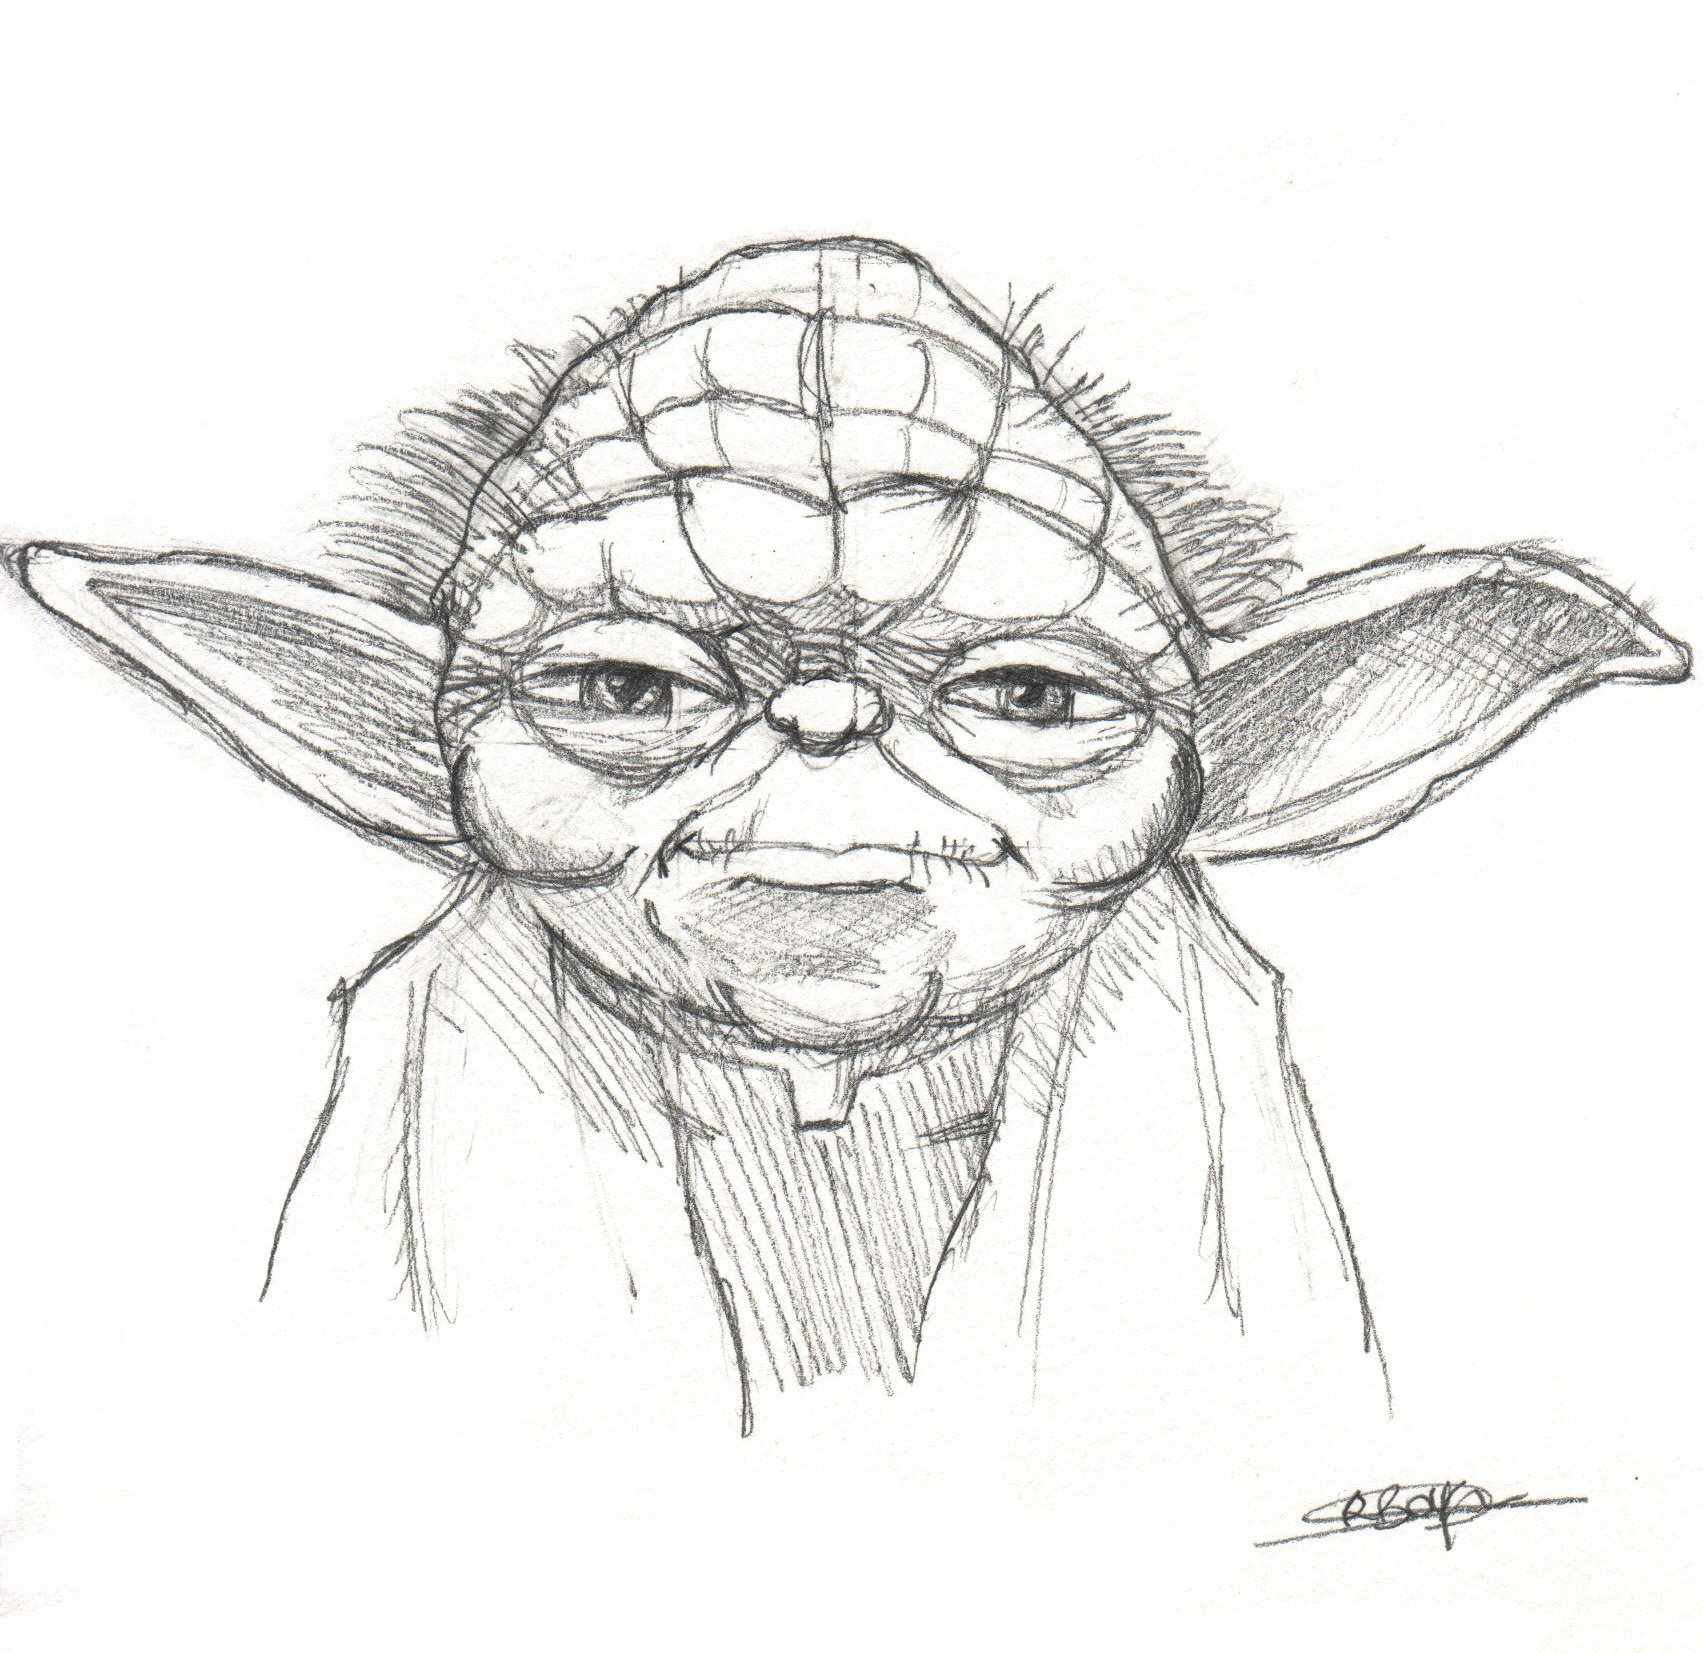 Star wars archive at the edge of the worlds - Dessin de star facile ...